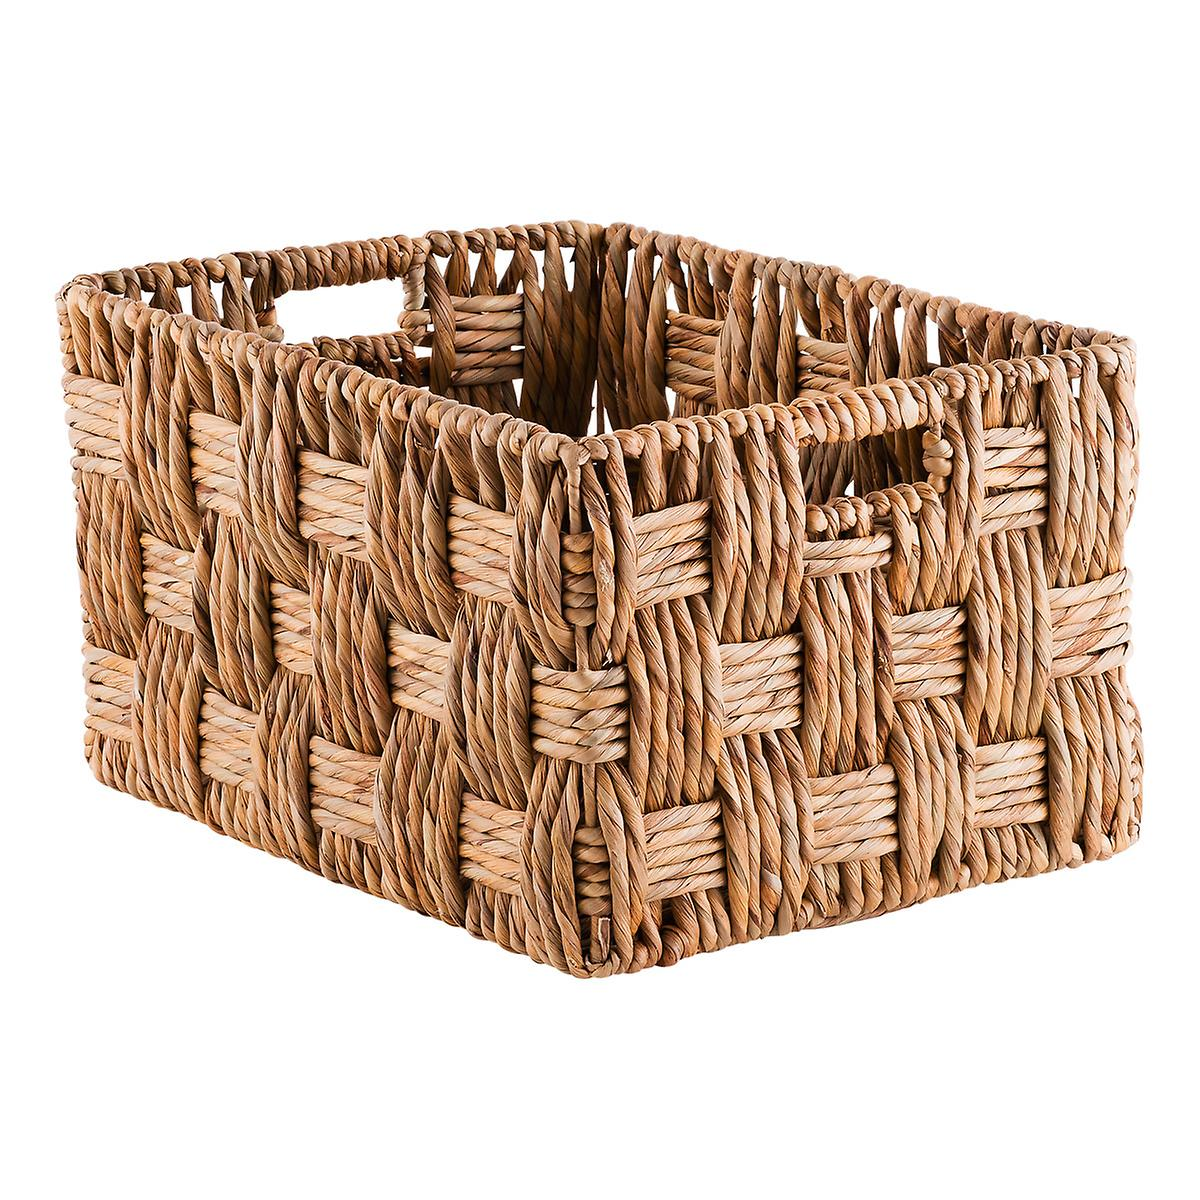 Don't sacrifice form for function. We use these beautiful baskets time and time again for a reason.